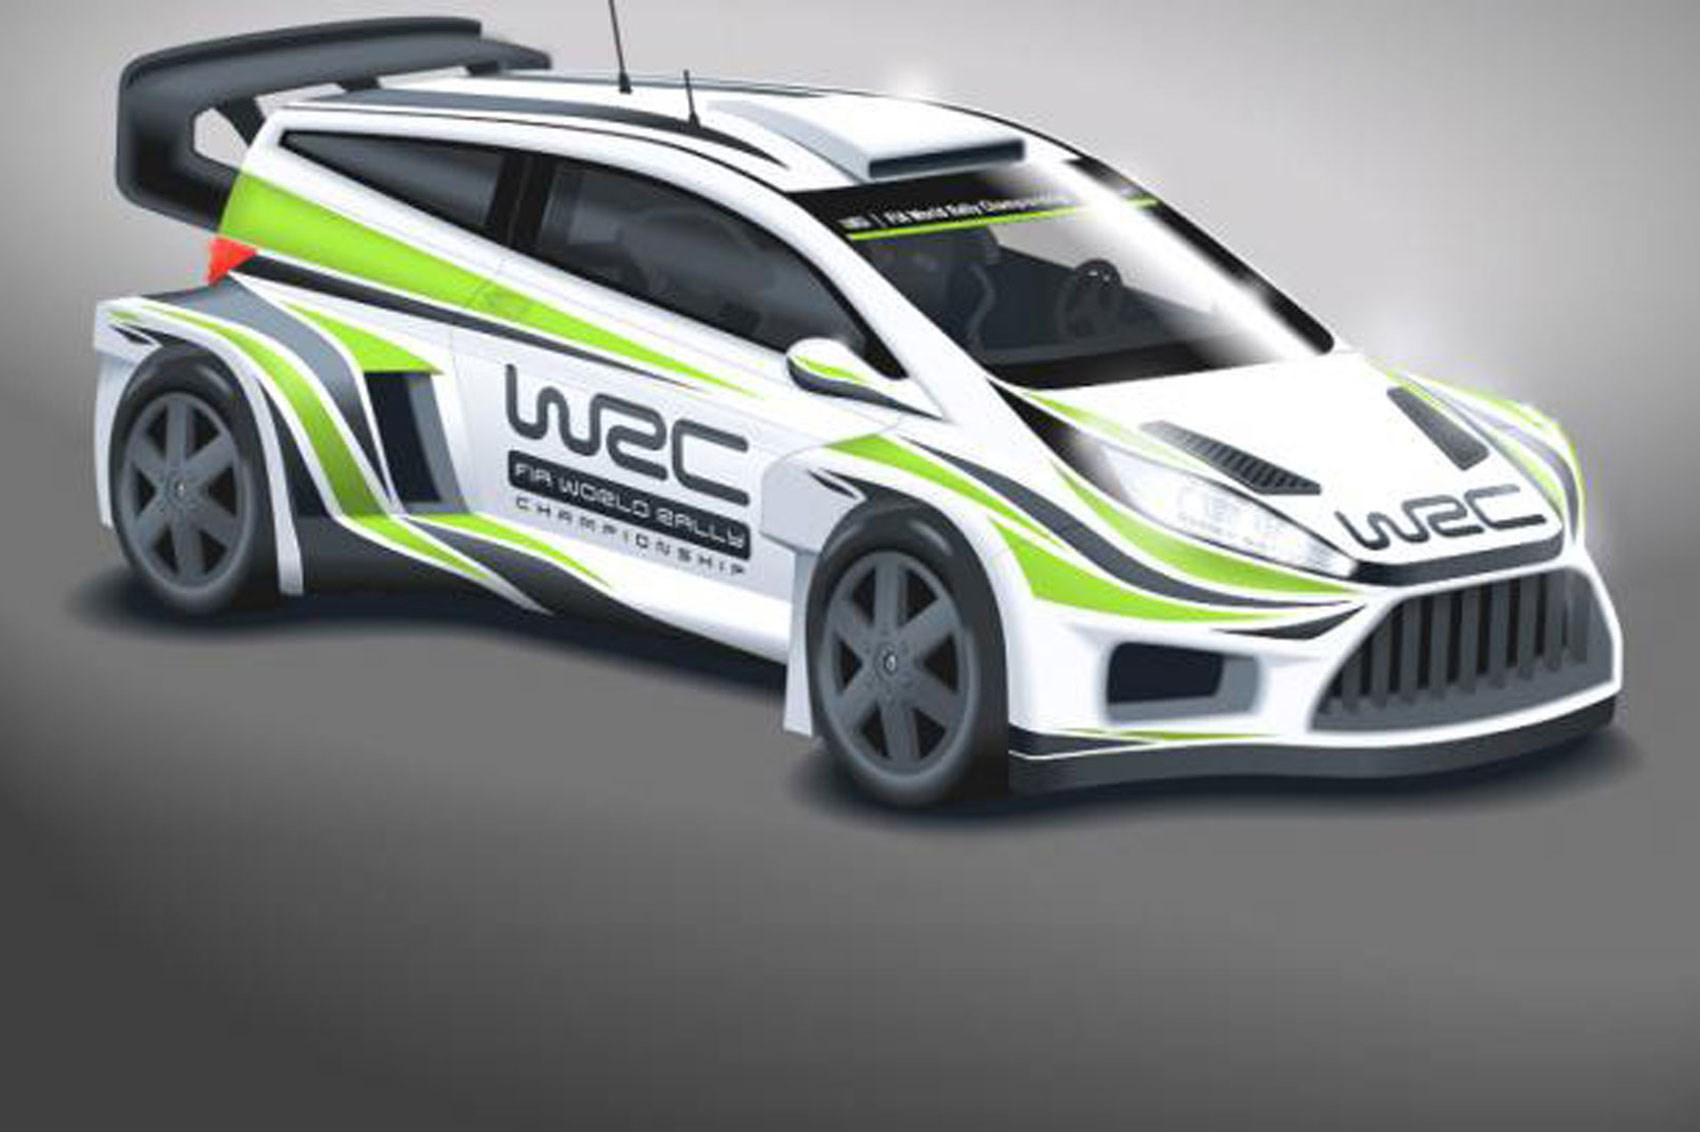 Ultrablogus  Stunning Wild New Look For Wrc Cars In  By Car Magazine With Fair Wrc Cars Will Get Wider Bodies Bigger Wings And More Power For  With Lovely Aston Martin Interior Also Kia Rio Interior Space In Addition Crv Interior And Mazda Mx Interior As Well As Db Interior Additionally Interior Of Bugatti From Carmagazinecouk With Ultrablogus  Fair Wild New Look For Wrc Cars In  By Car Magazine With Lovely Wrc Cars Will Get Wider Bodies Bigger Wings And More Power For  And Stunning Aston Martin Interior Also Kia Rio Interior Space In Addition Crv Interior From Carmagazinecouk